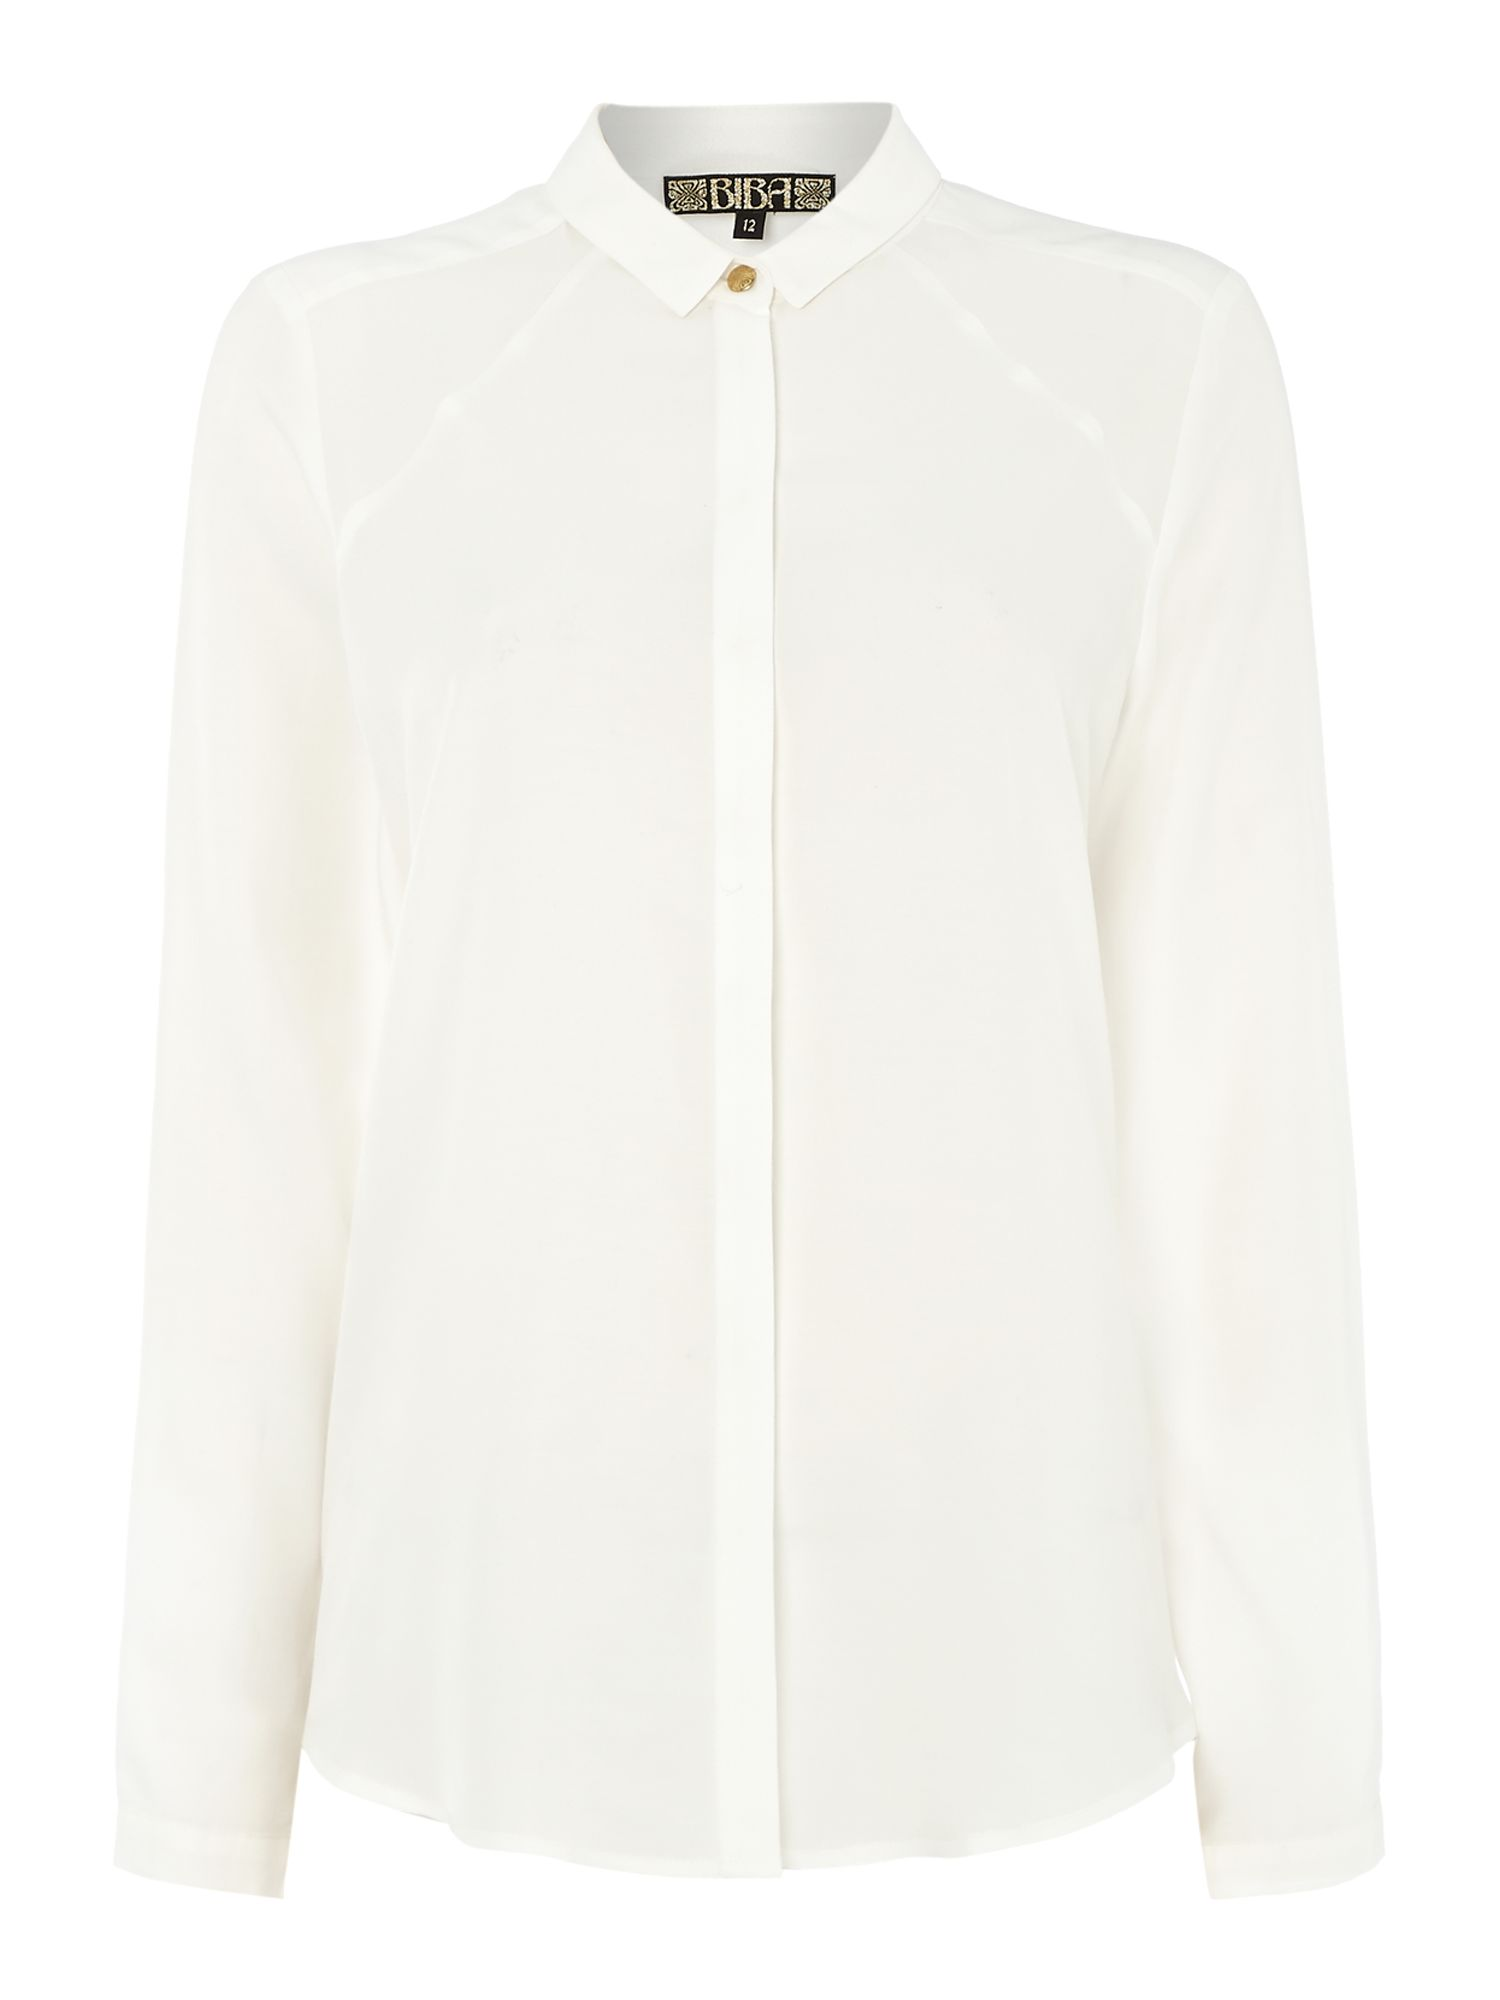 Harry Logo button detailed shirt in luxe fabric